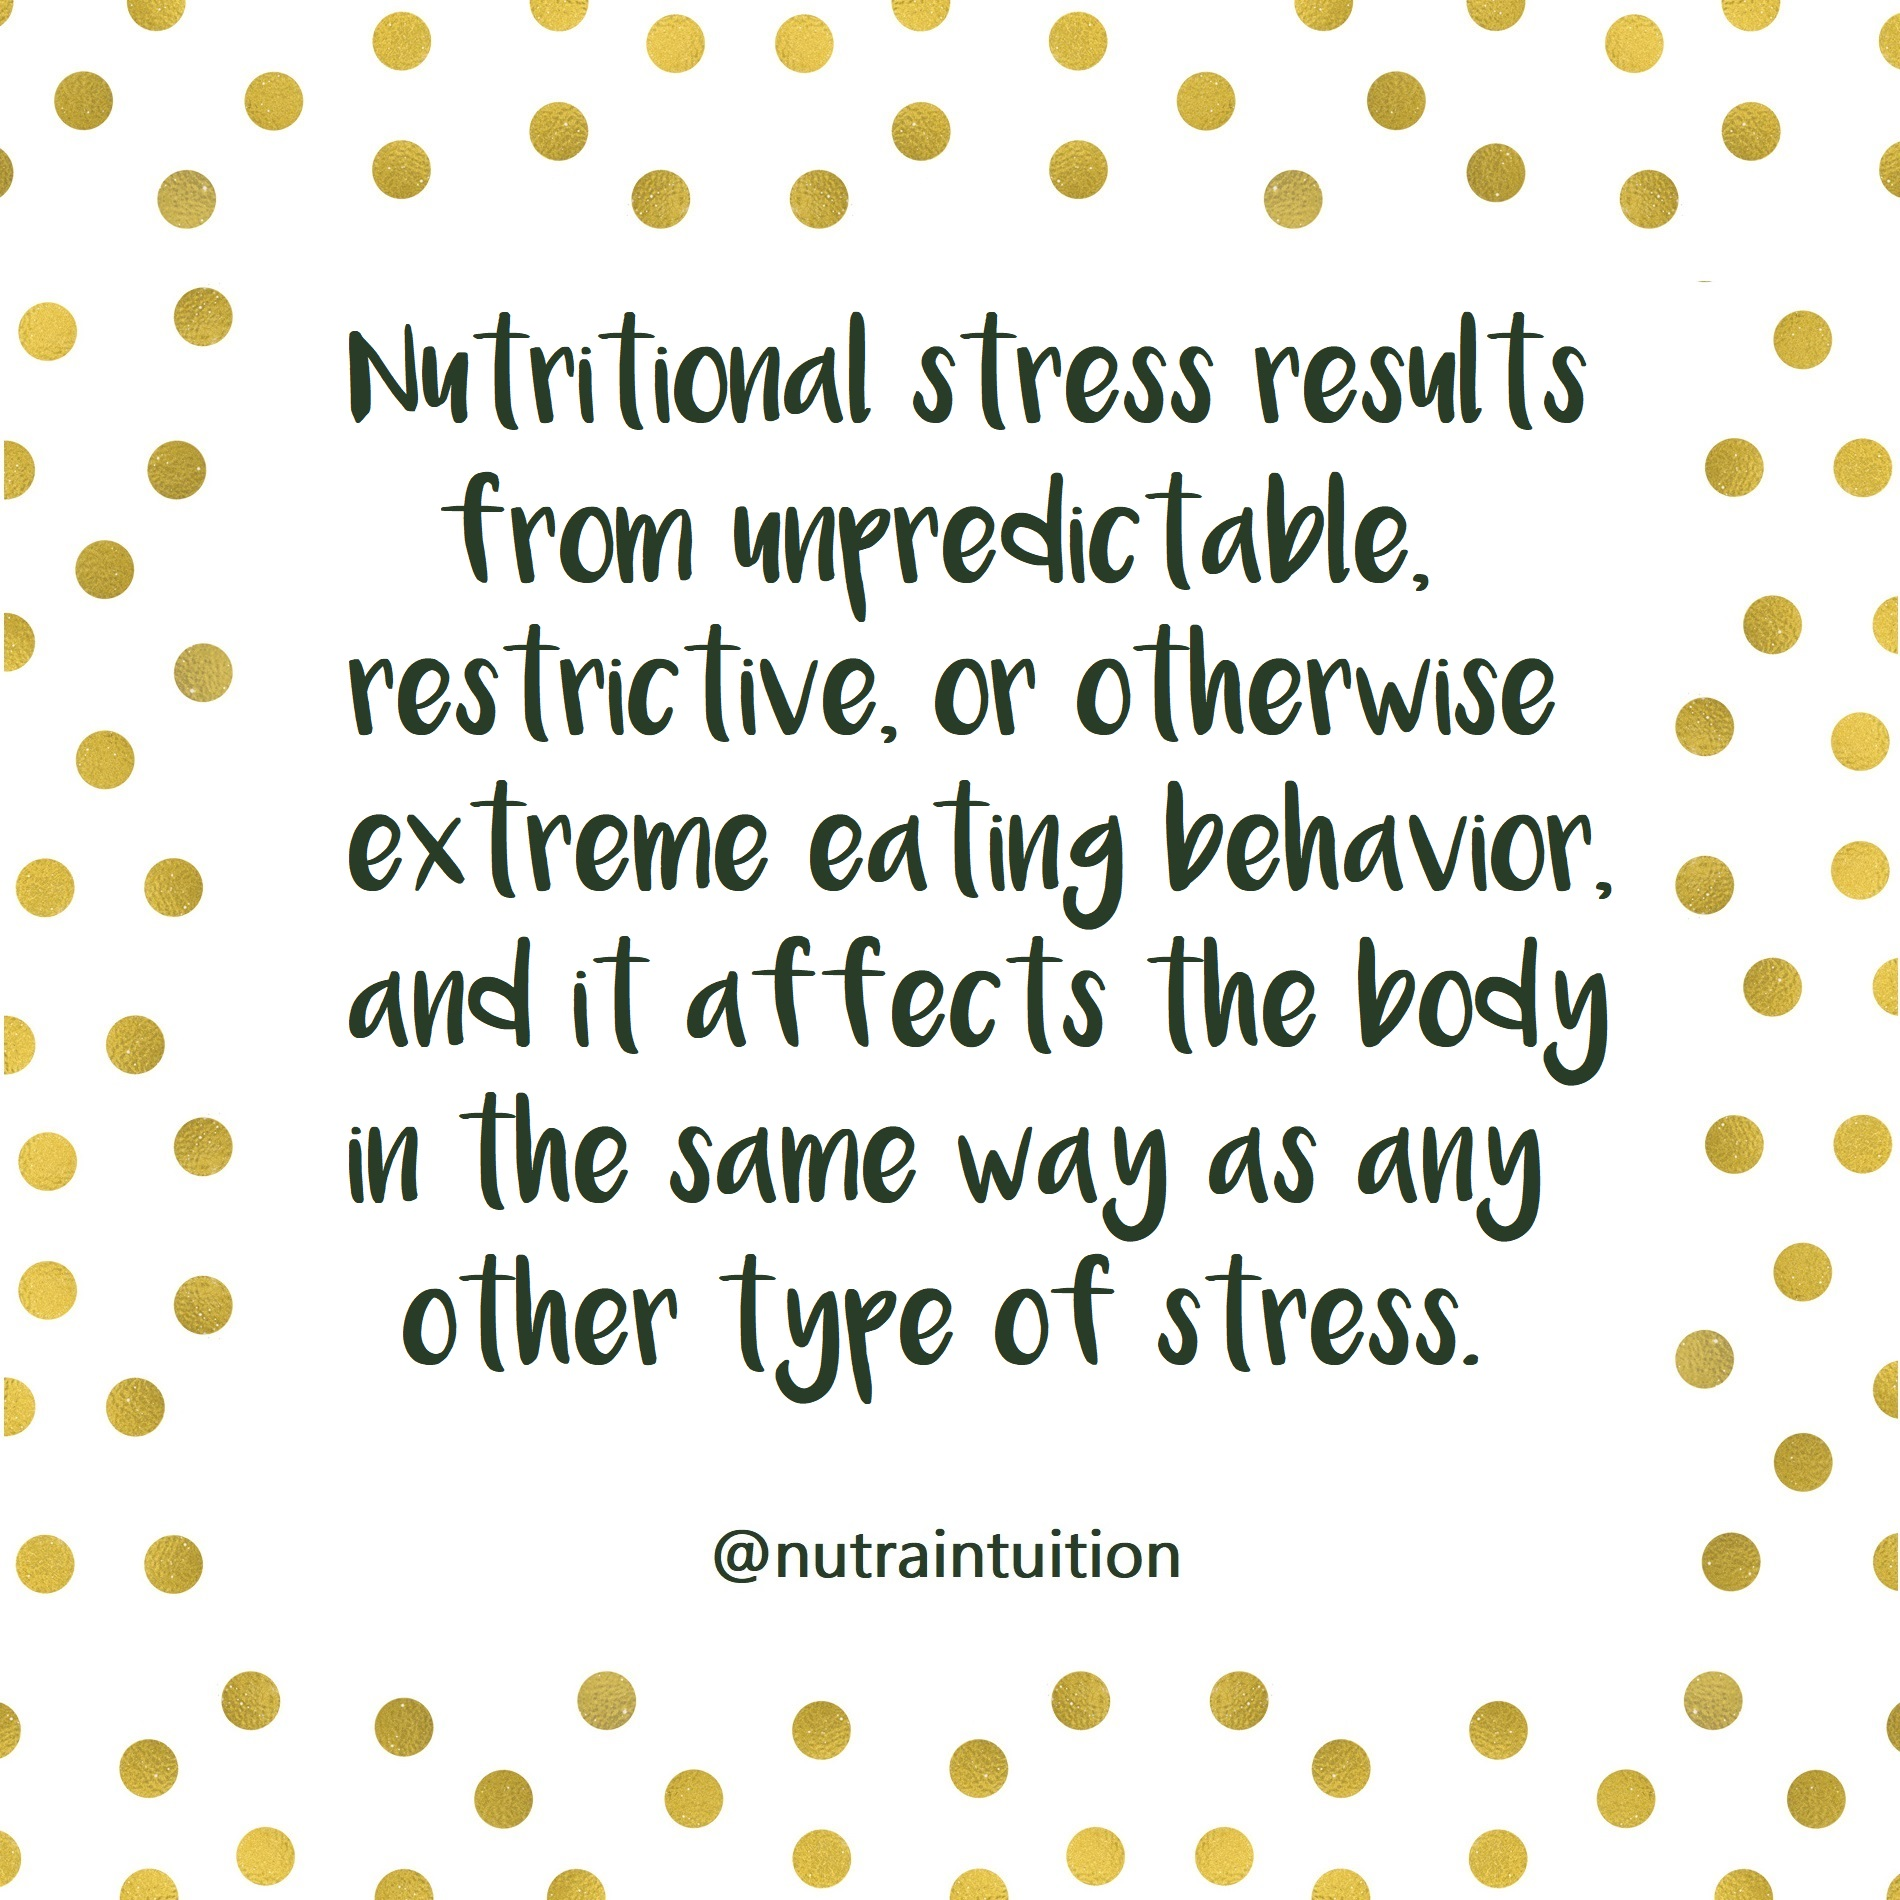 nutritional stress